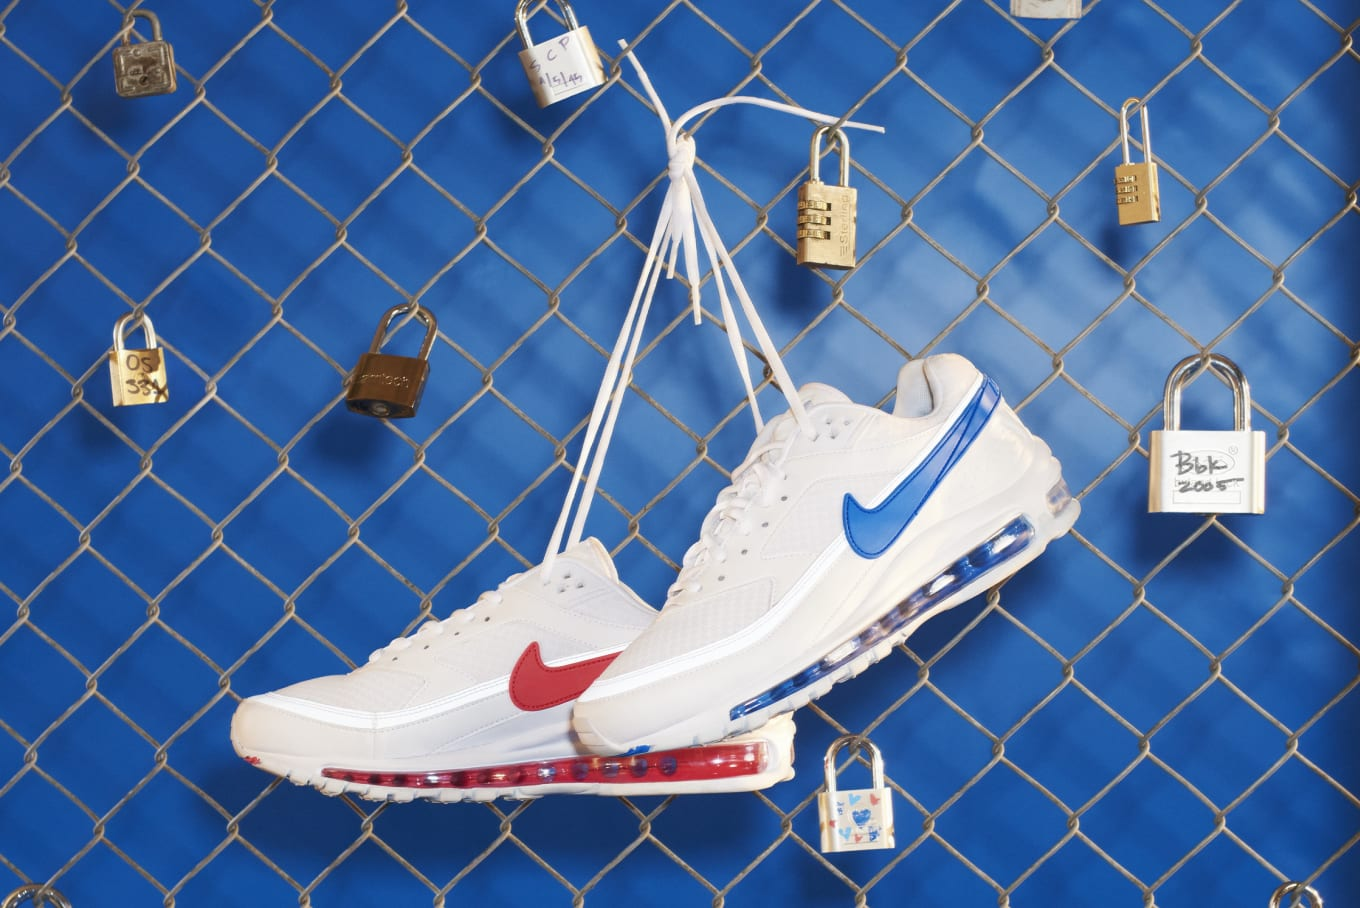 How to Get the Skepta x Nike Air Max BW 97 SK AO2113-100  90f1fdff9